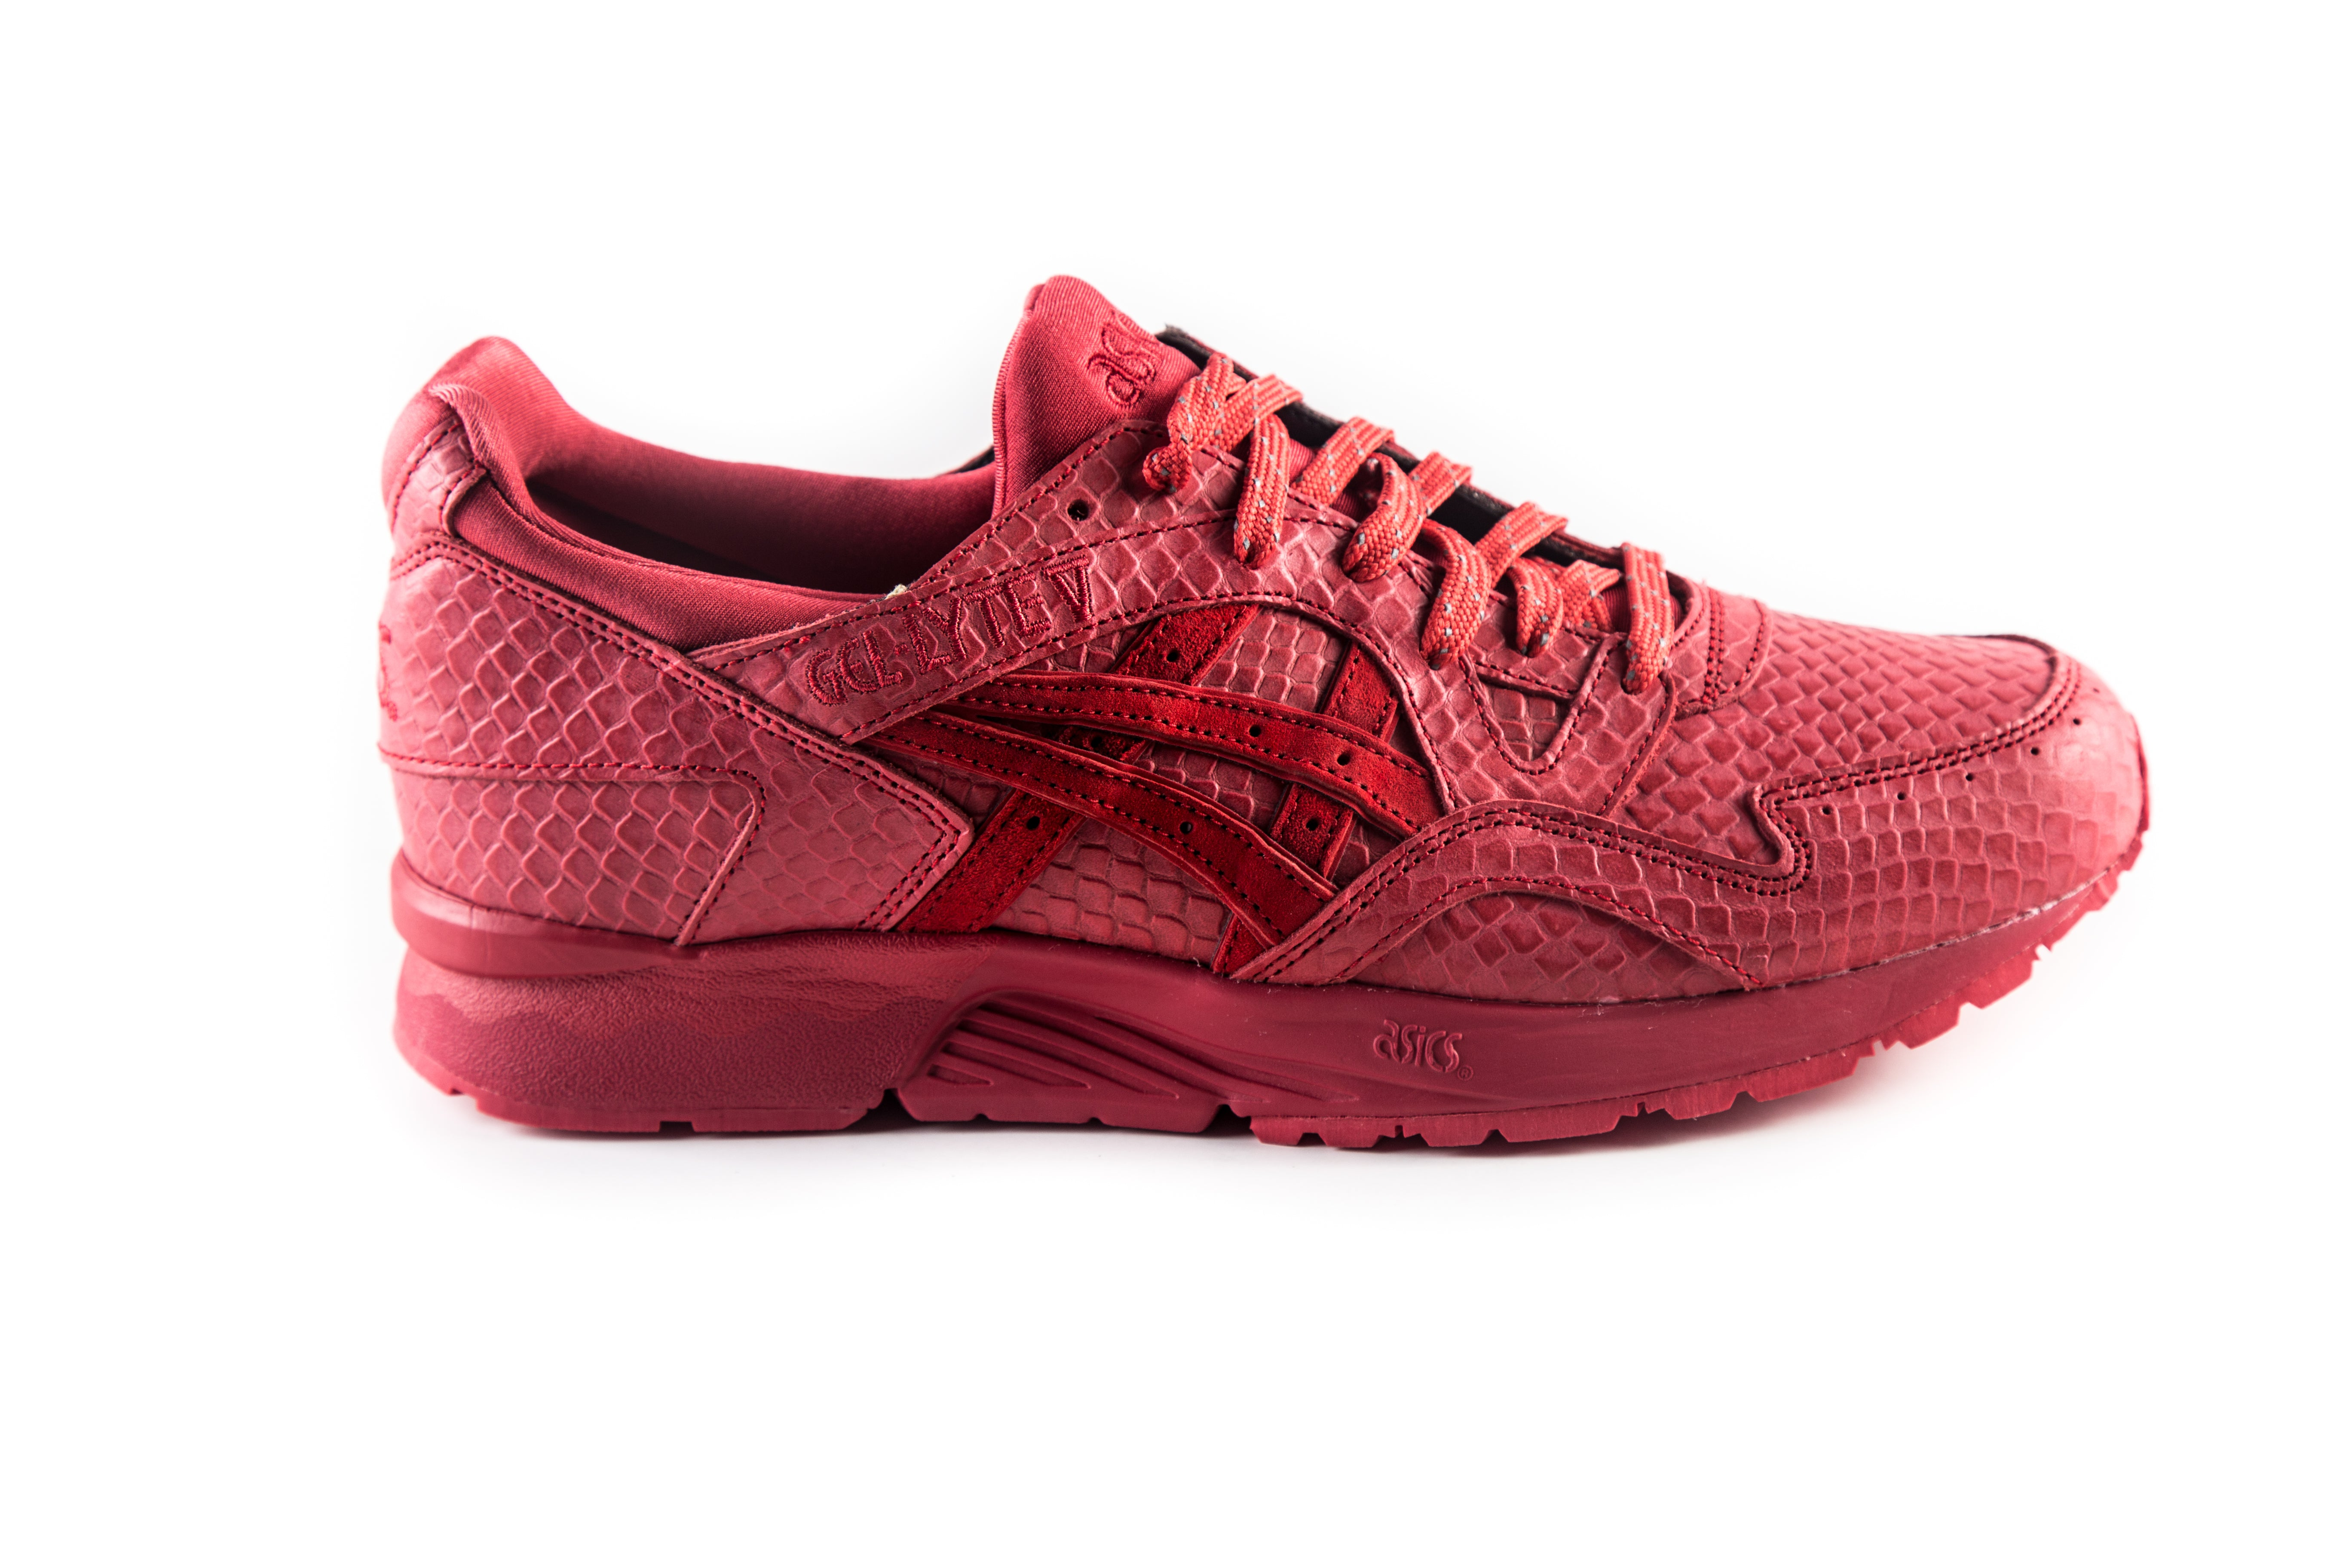 Gel-Lyte V Ronnie Fieg Mamba Pack